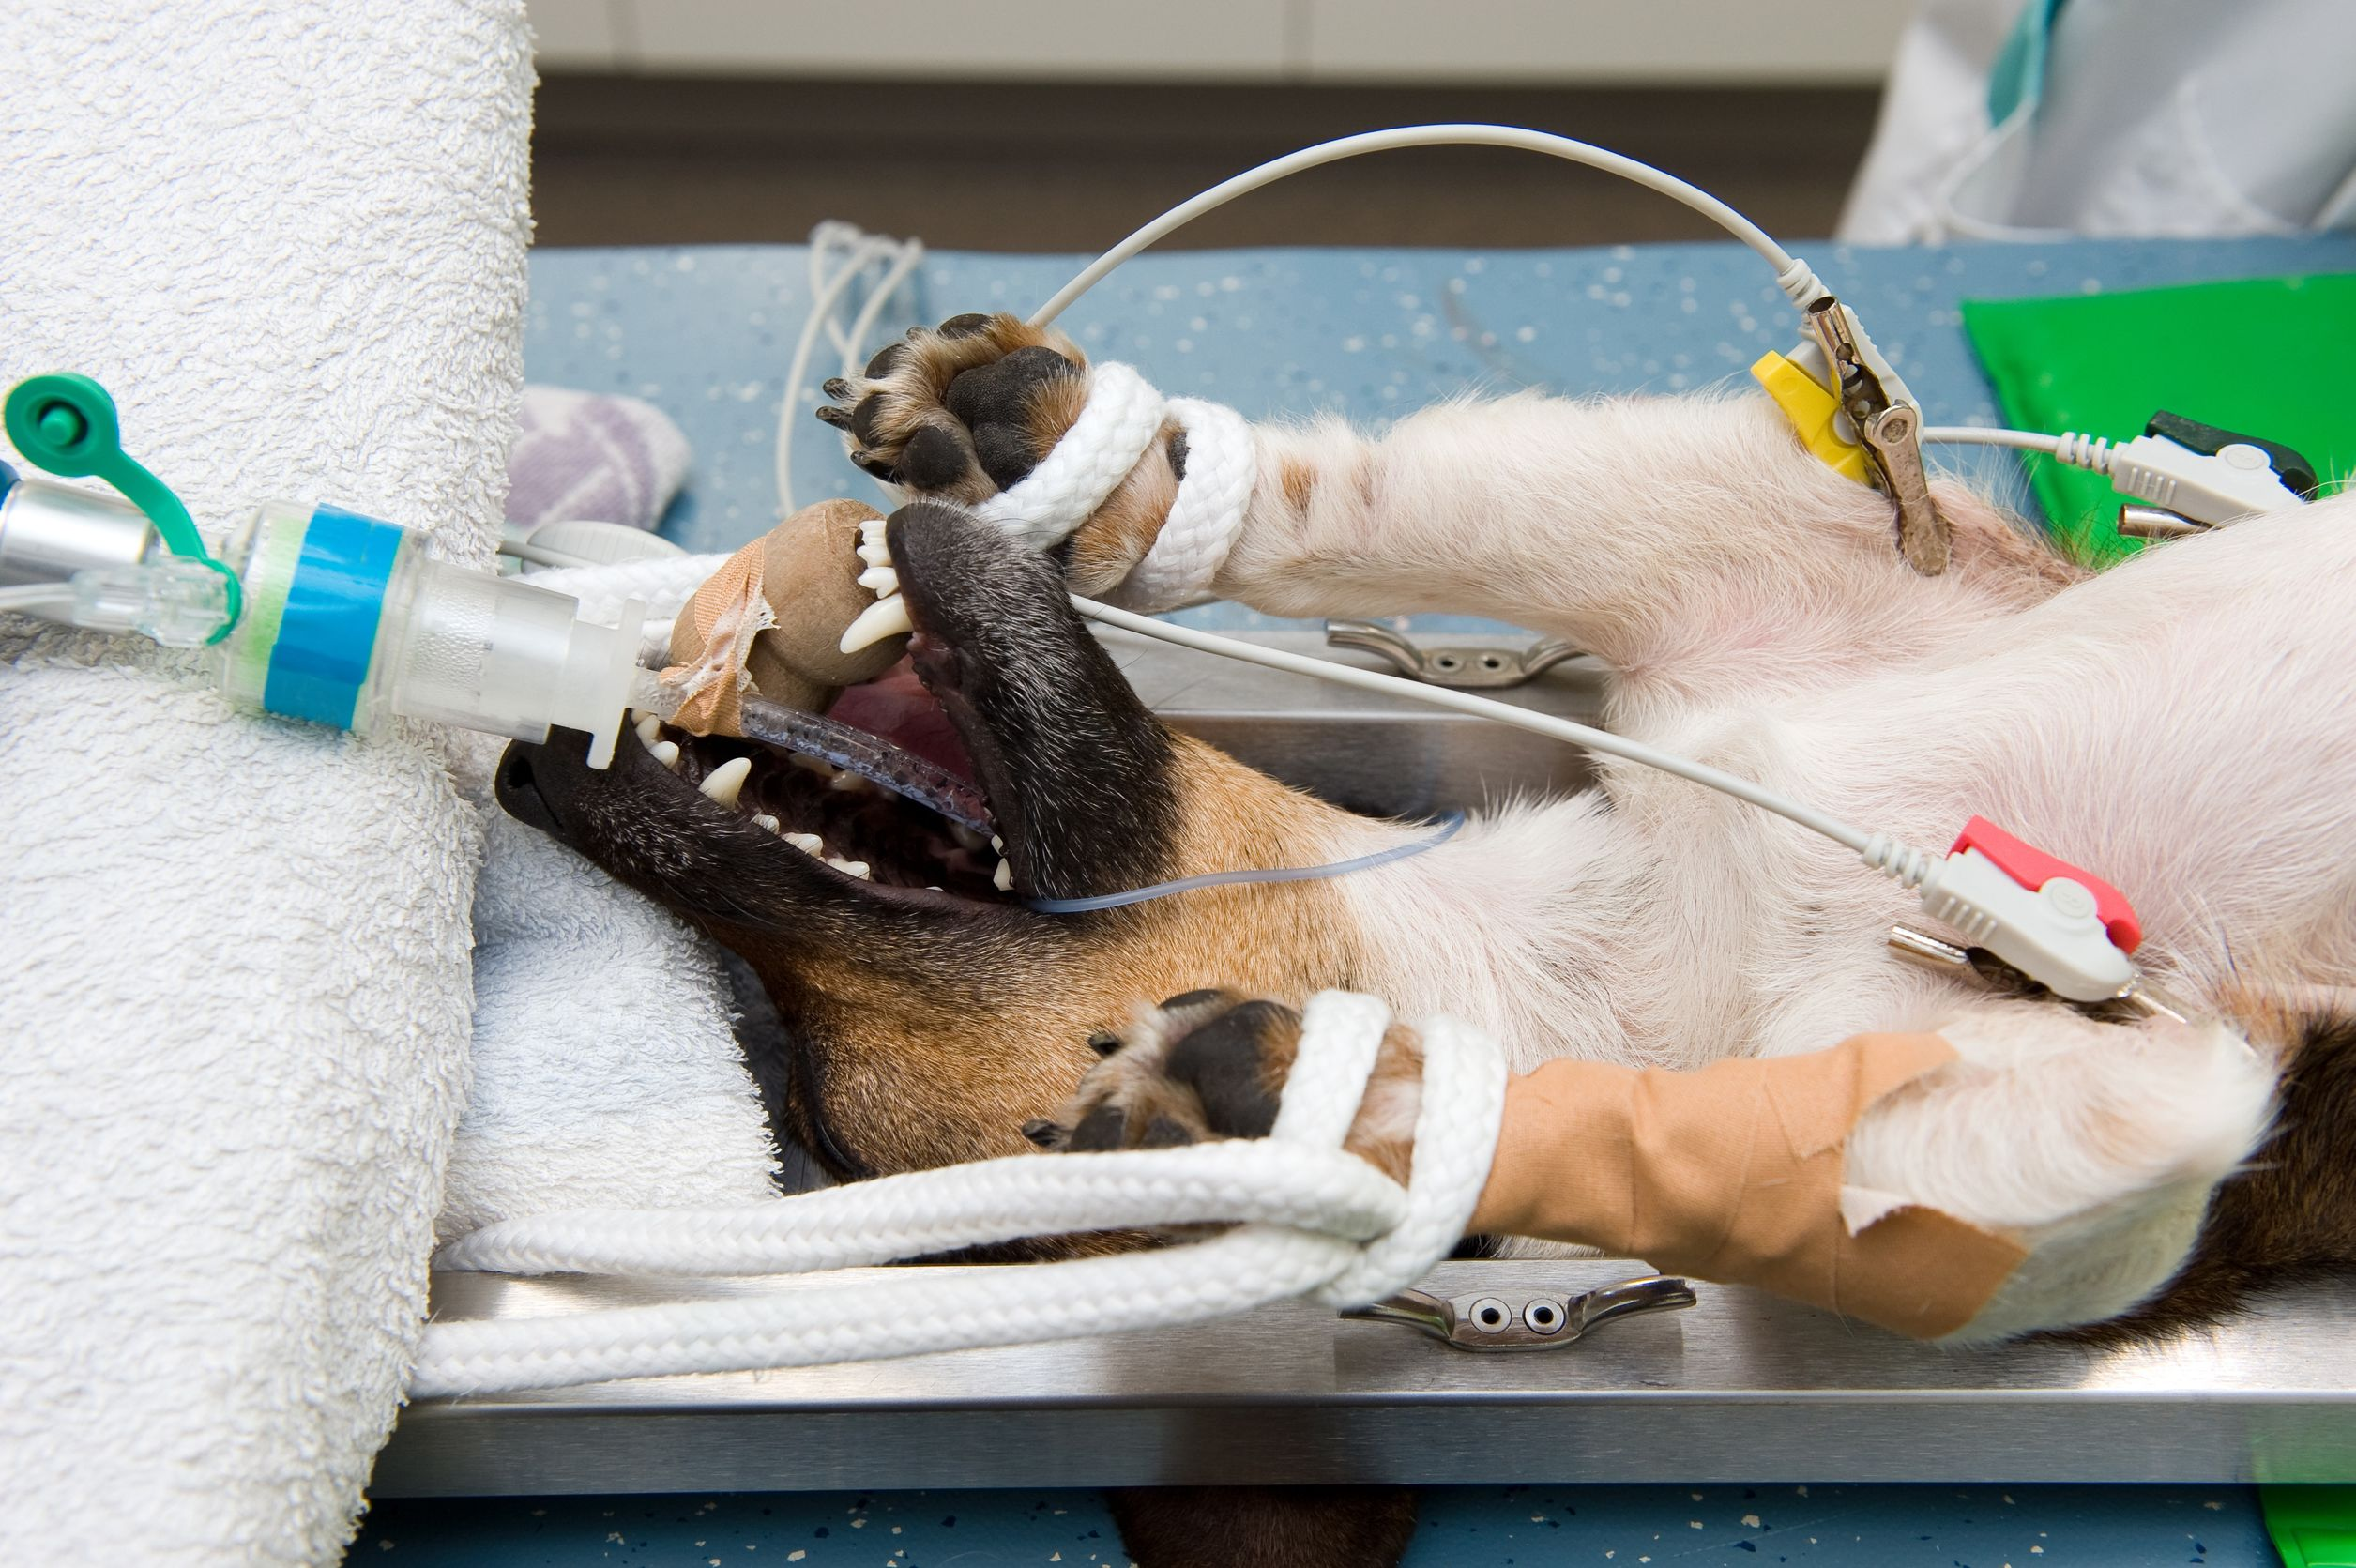 A dog in lying unconscious in a veterinarian clinic while a surgeon is sterilizing her